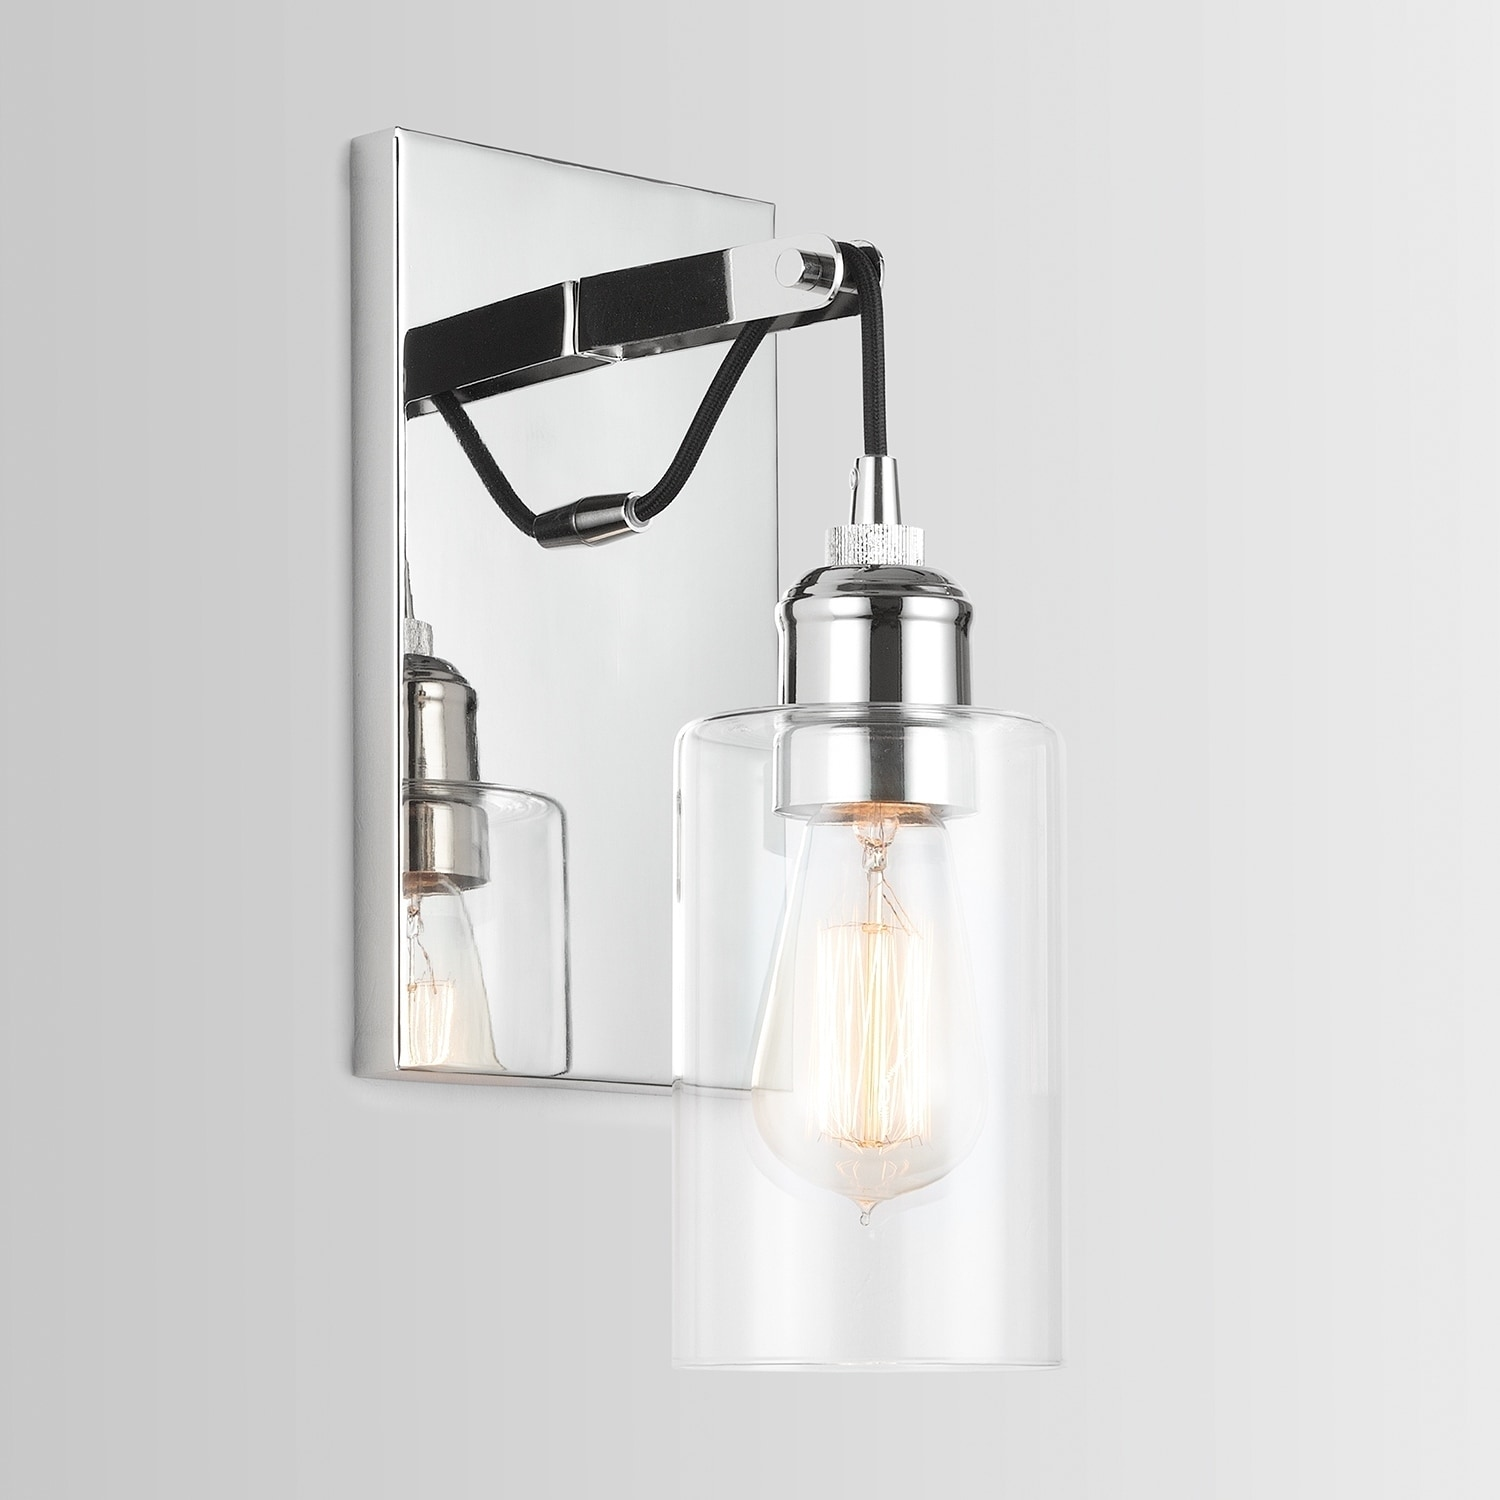 Austin Allen Company 1 Light Polished Nickel Wall Sconce Polished Nickel Polished Nickel Walmart Com Walmart Com